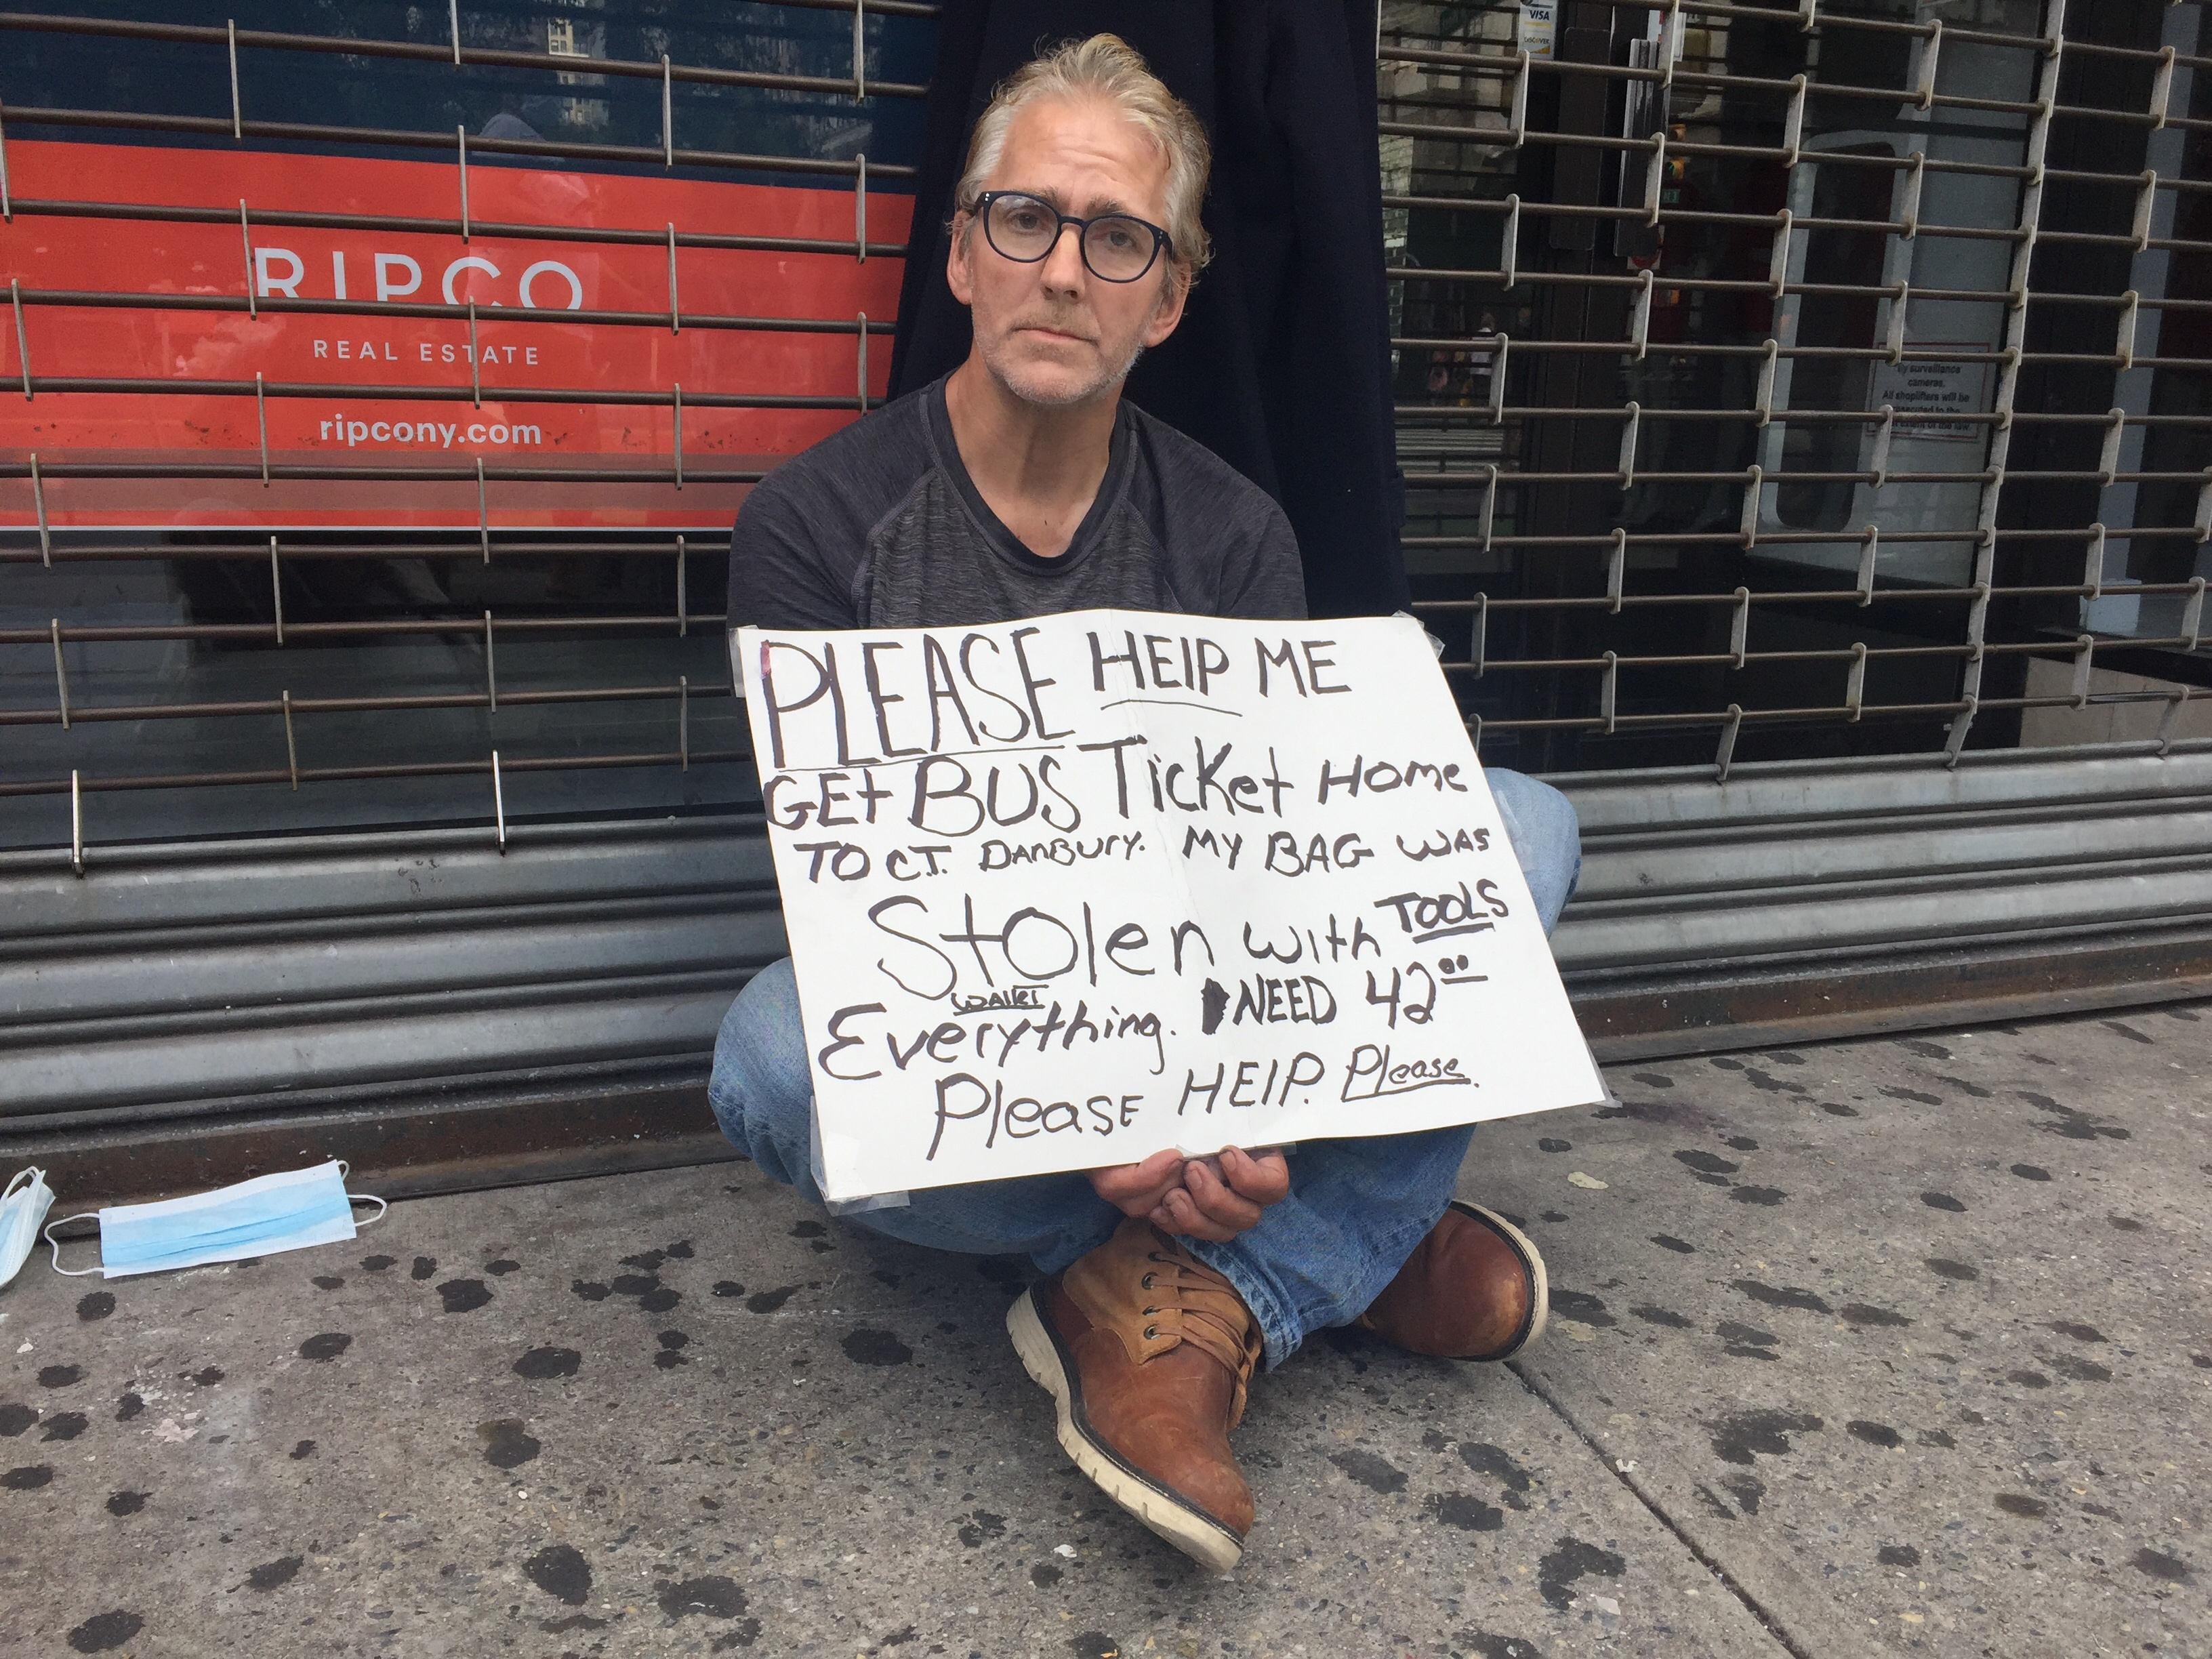 A white man with glasses, with a sign saying he's homeless, sits outside a gated store